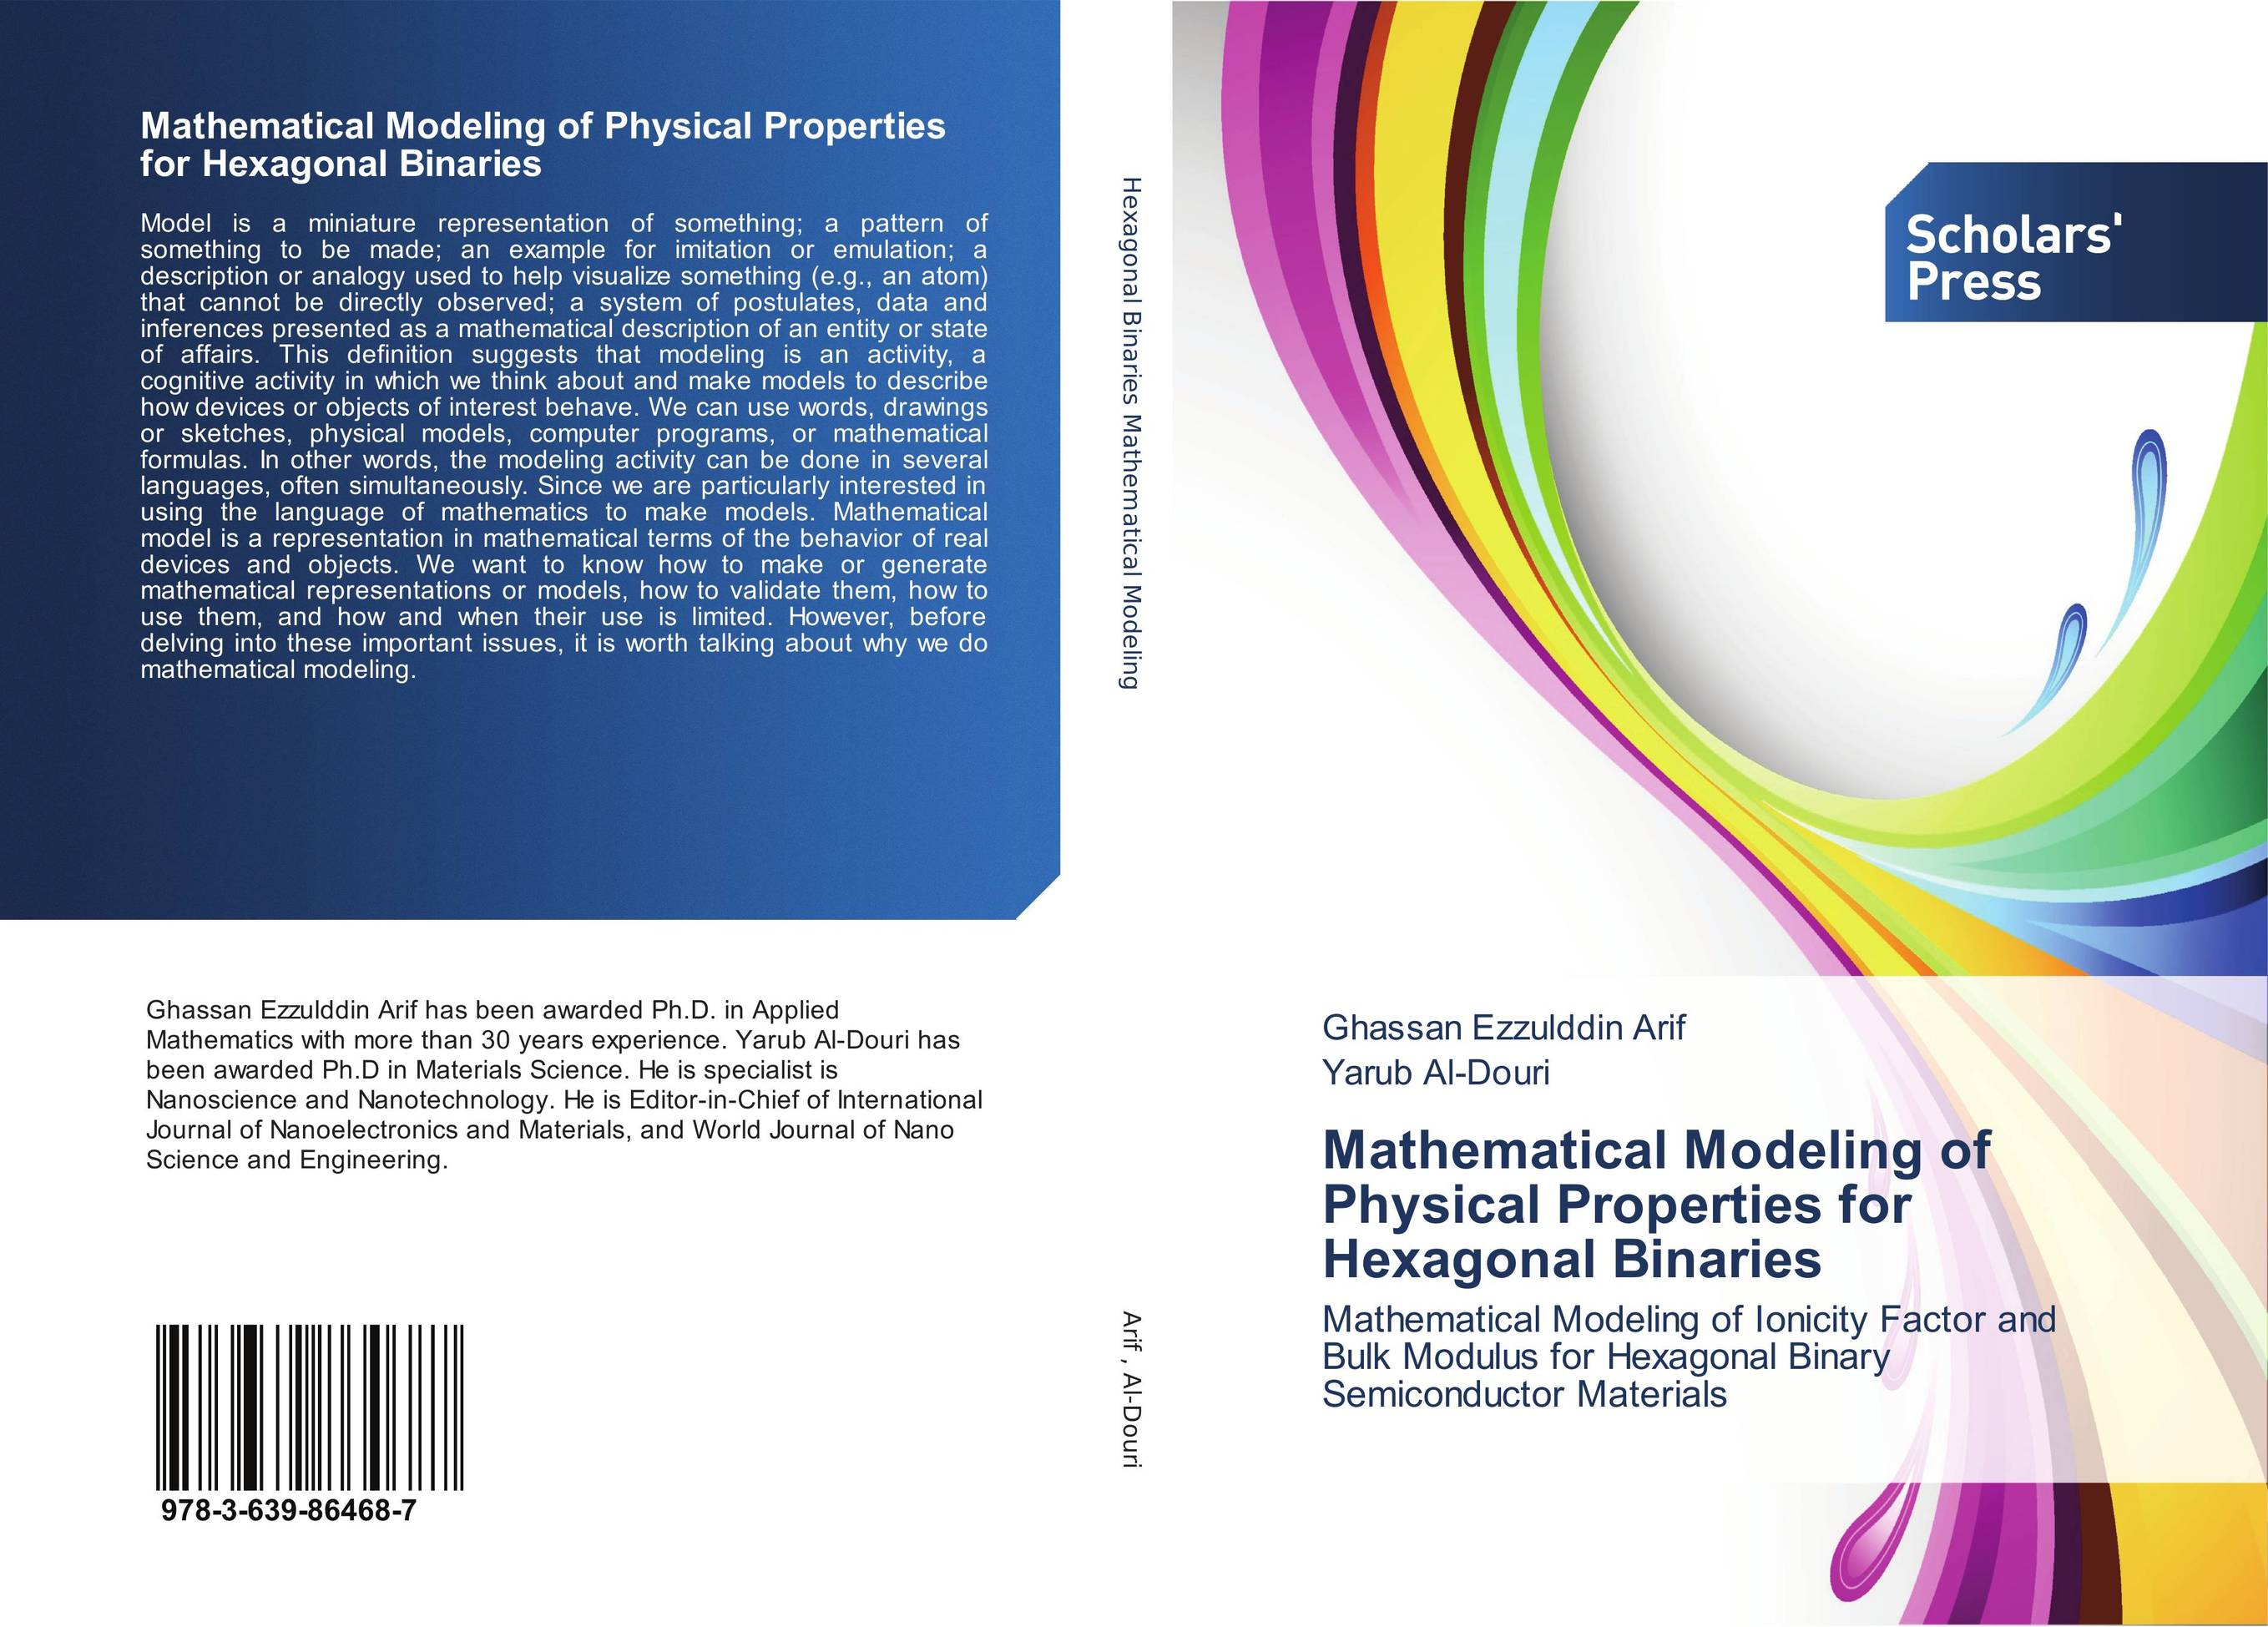 Mathematical Modeling of Physical Properties for Hexagonal Binaries mathematical walks a collection of interviews